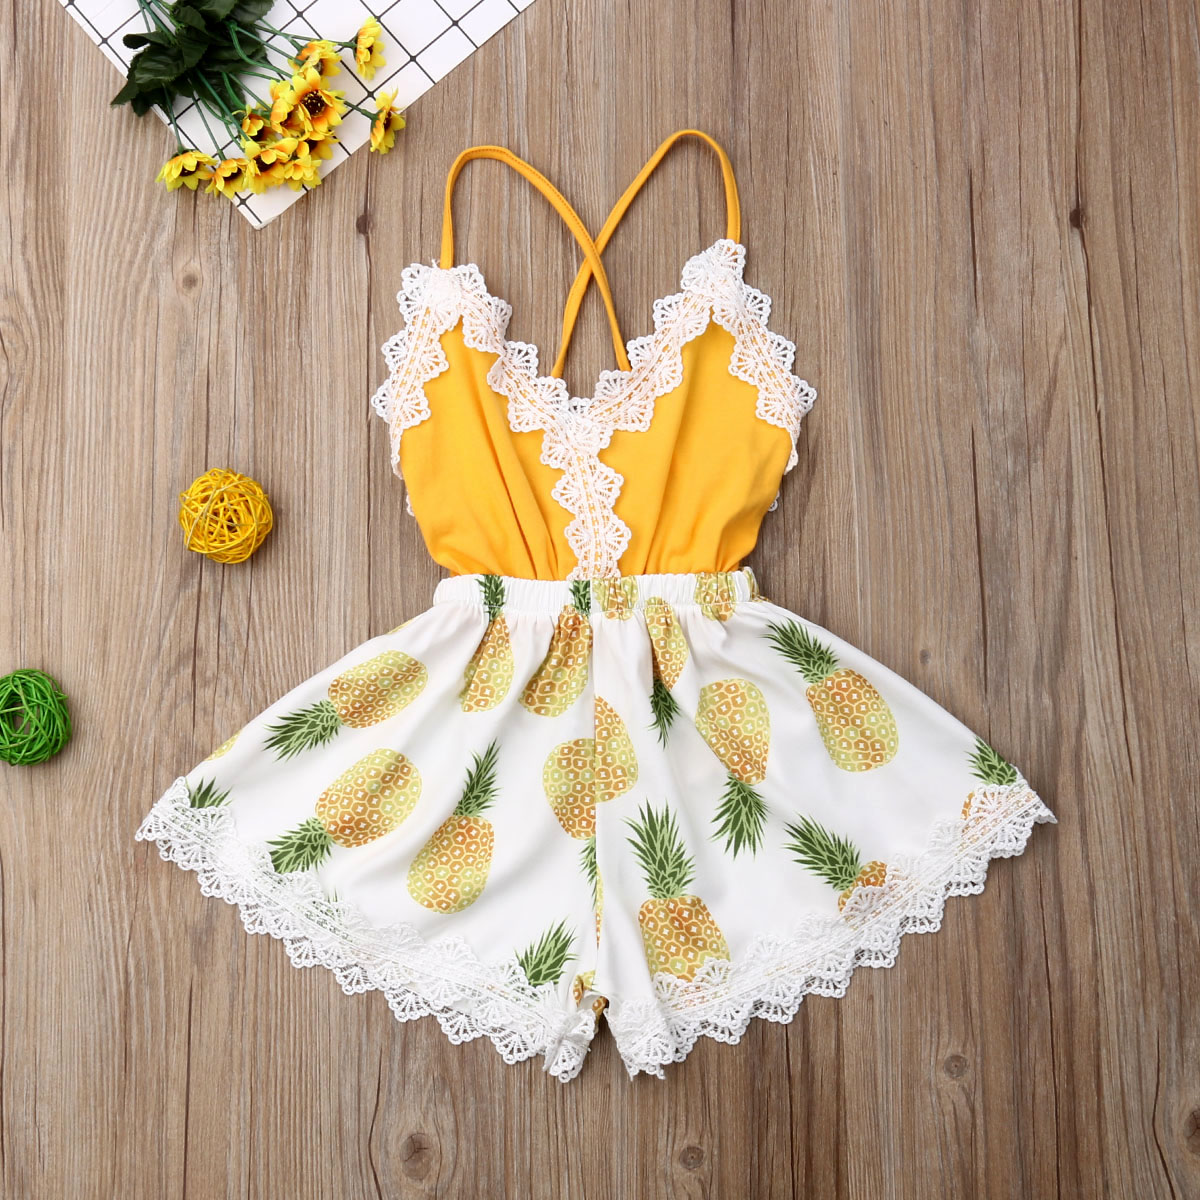 Pudcoco Summer Toddler Baby Girl Clothes Sleeveless Lace Ruffle Pineapple Print Backless Romper Jumpsuit Outfit Sunsuit Clothes